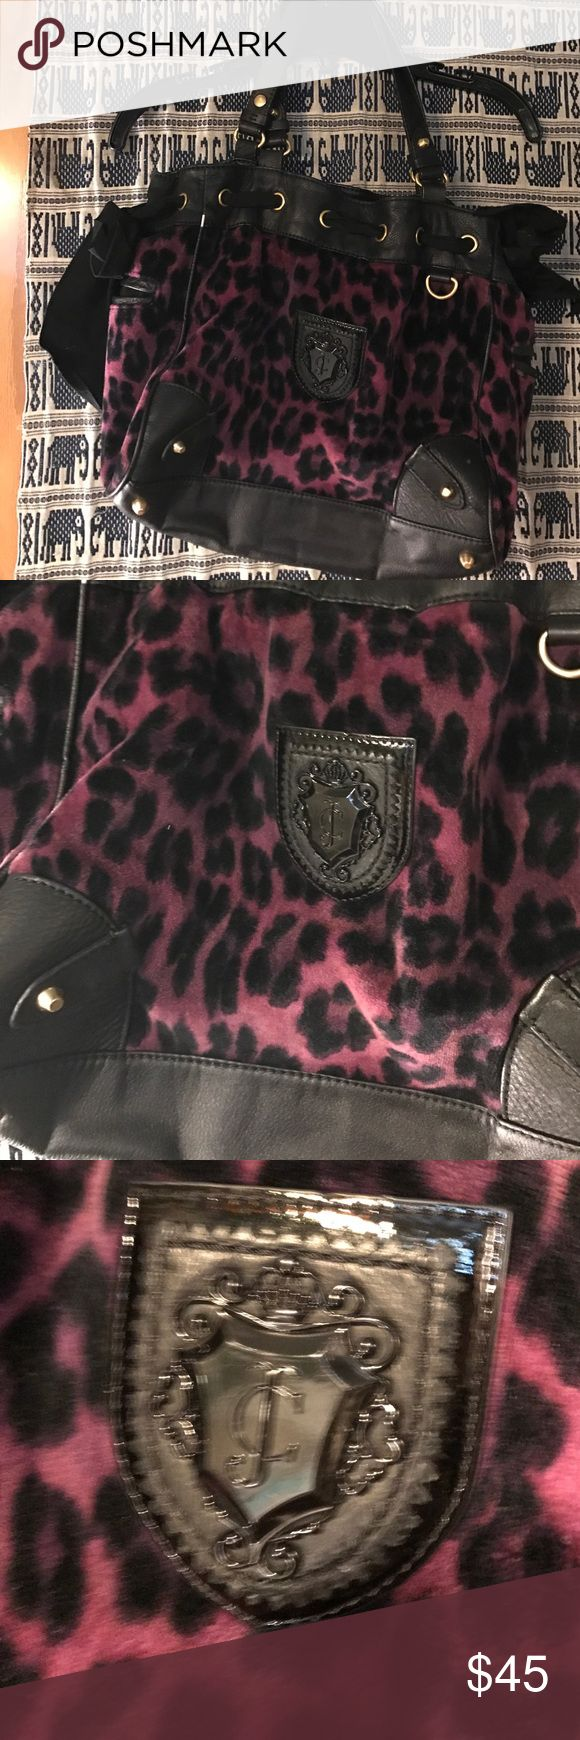 Leopard print purse Juicy Couture purple and black leopard print bag, some signs of wear but in great condition Juicy Couture Bags Shoulder Bags